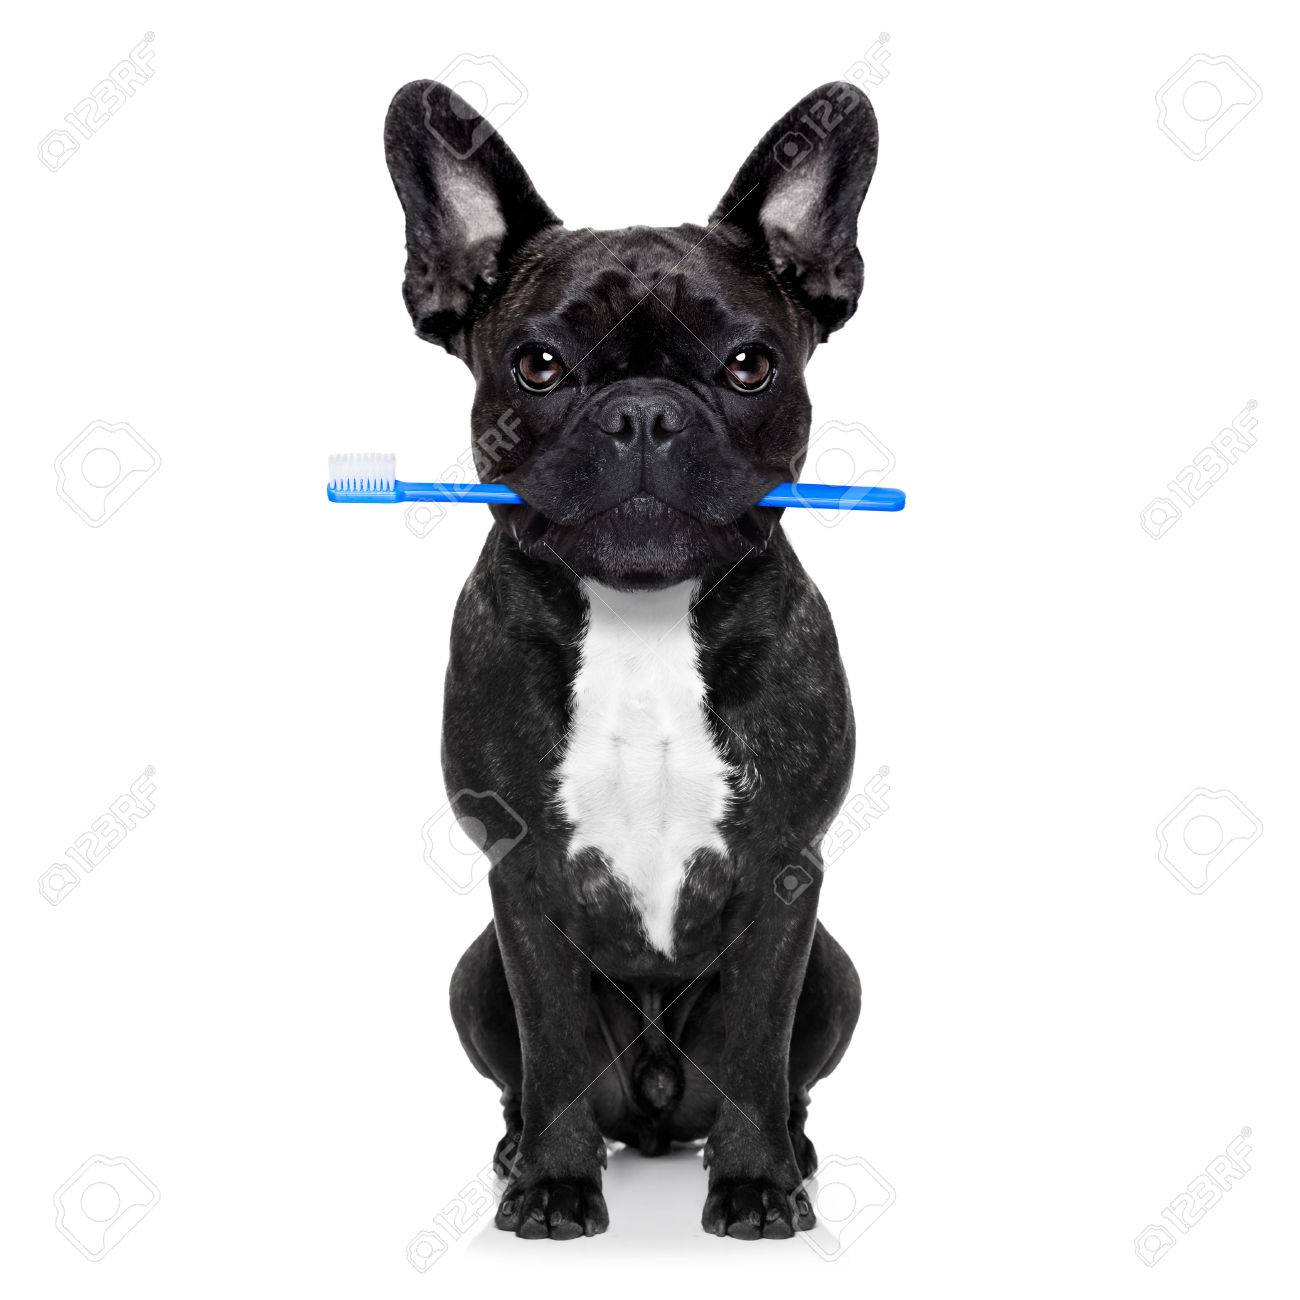 french bulldog dog holding toothbrush with mouth at the dentist or dental veterinary, isolated on white background Stock Photo - 44964438